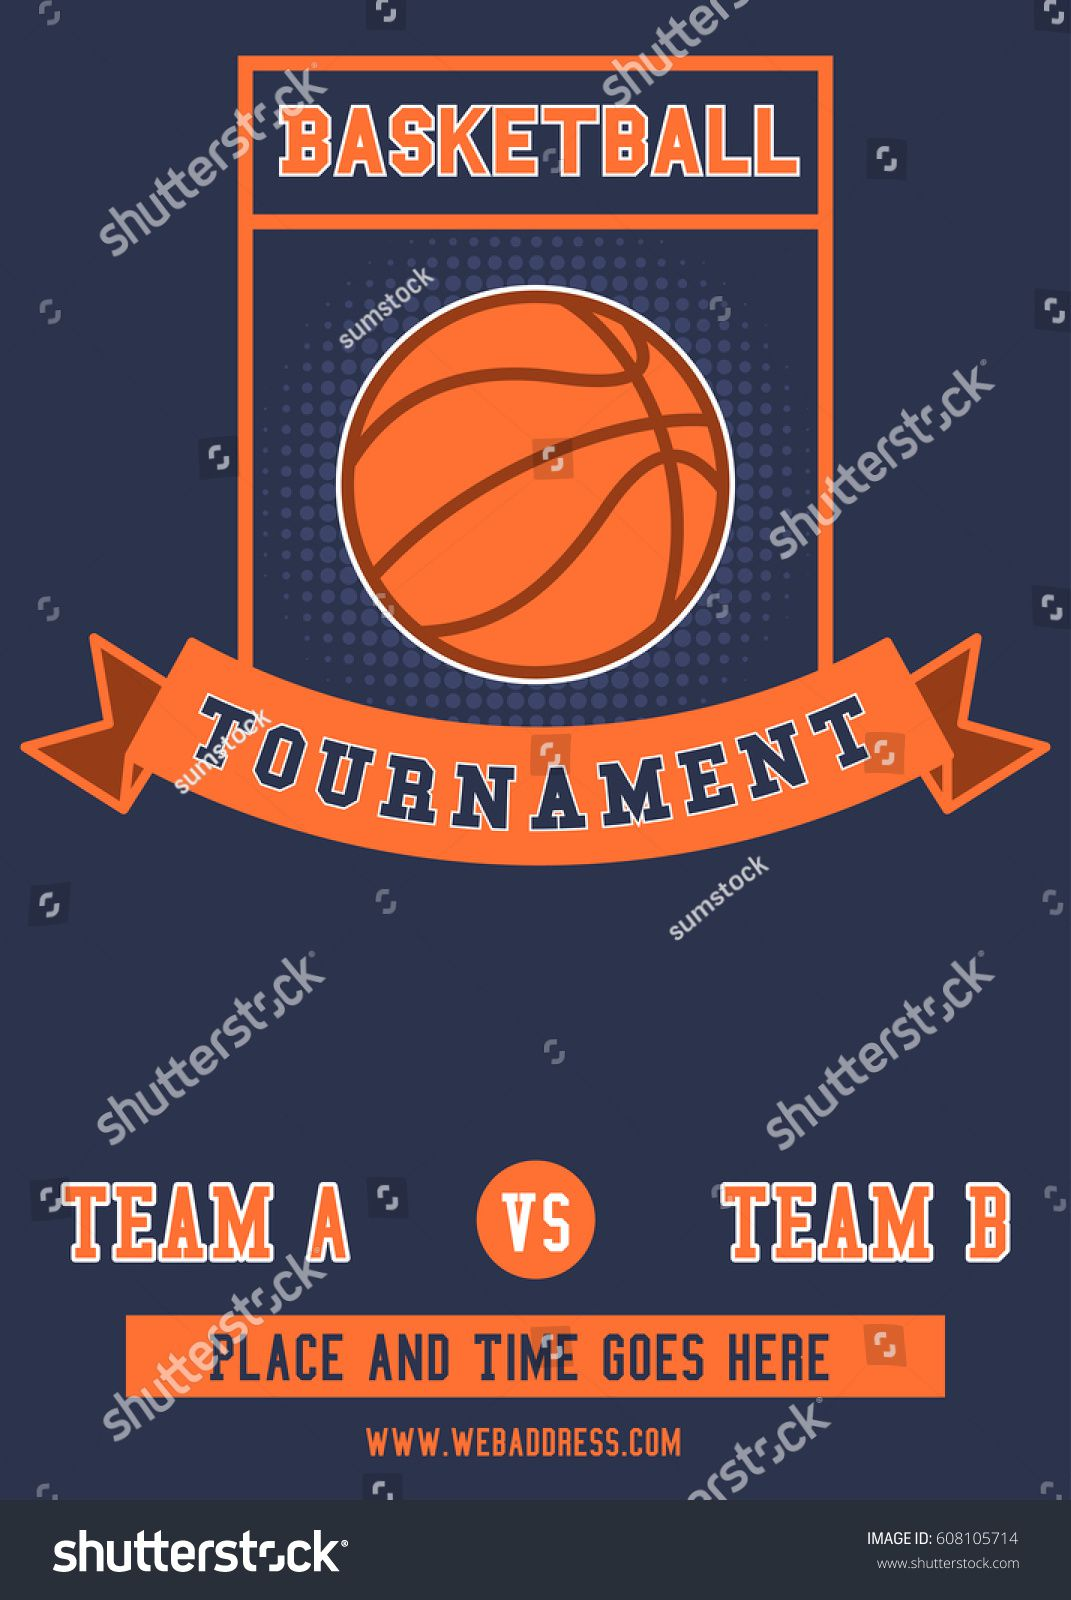 010 Imposing Basketball Tournament Flyer Template High Definition  3 On FreeFull